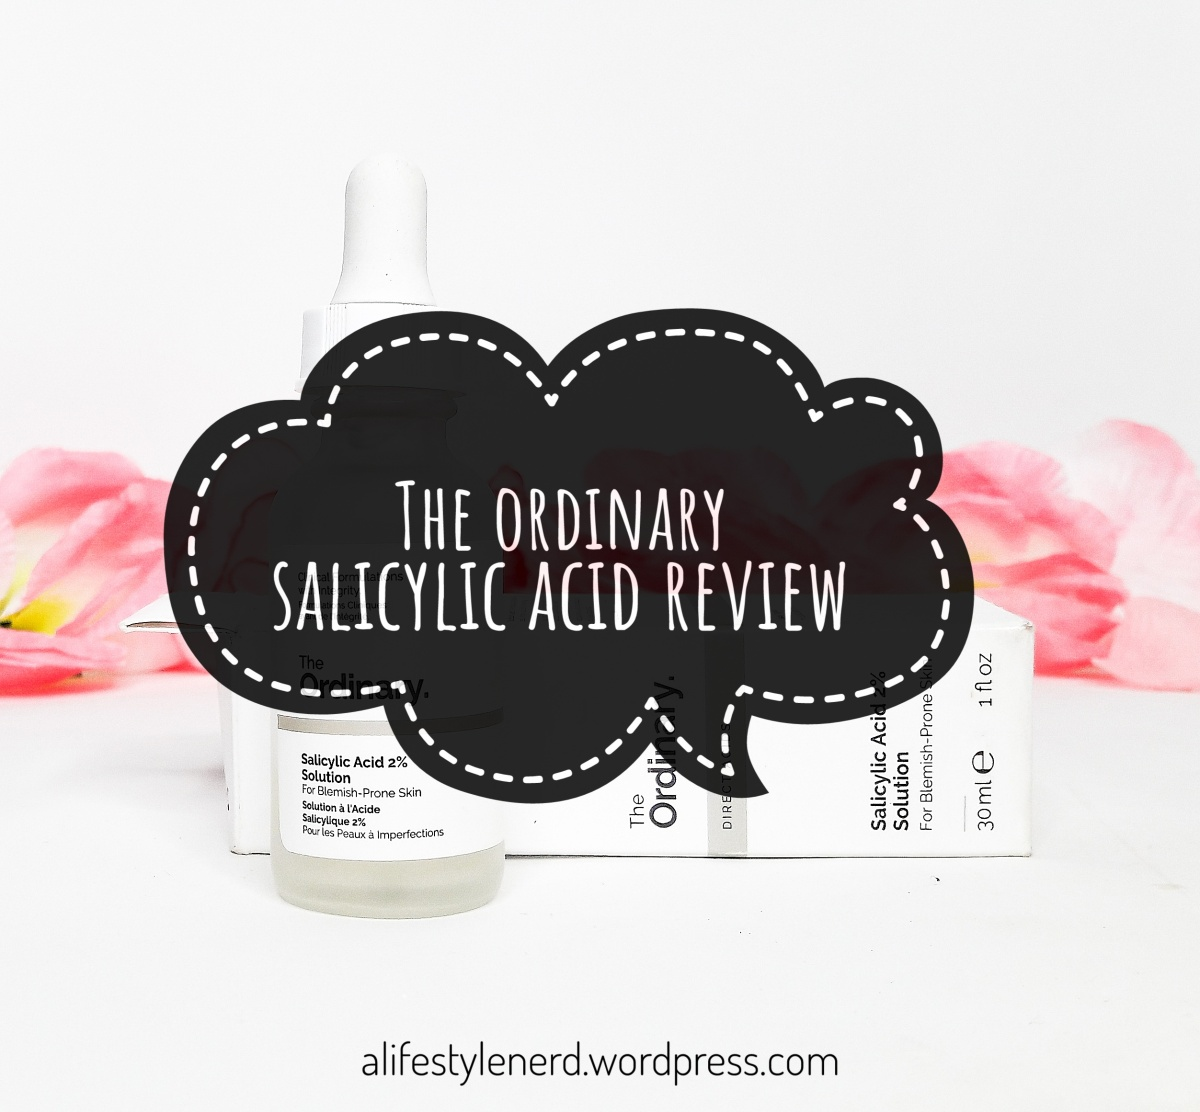 How to Improve Acne: The Ordinary Salicylic Acid Review